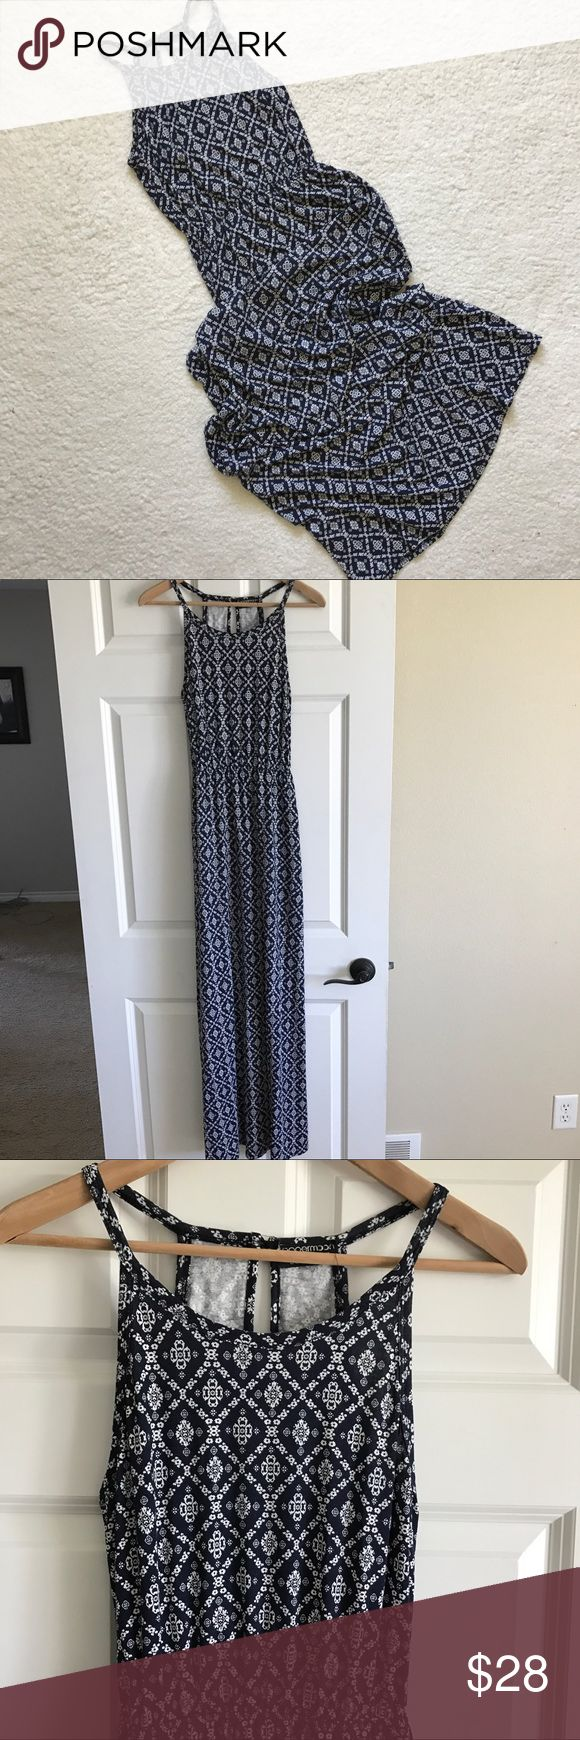 """Papermoon for Stitch Fix Maxi Dress In great condition!  Navy blue and white.  High neckline.  Elastic waistband.  Keyhole back.  Size Small.  Chest 32"""".  Length 57"""". Papermoon Dresses Maxi"""